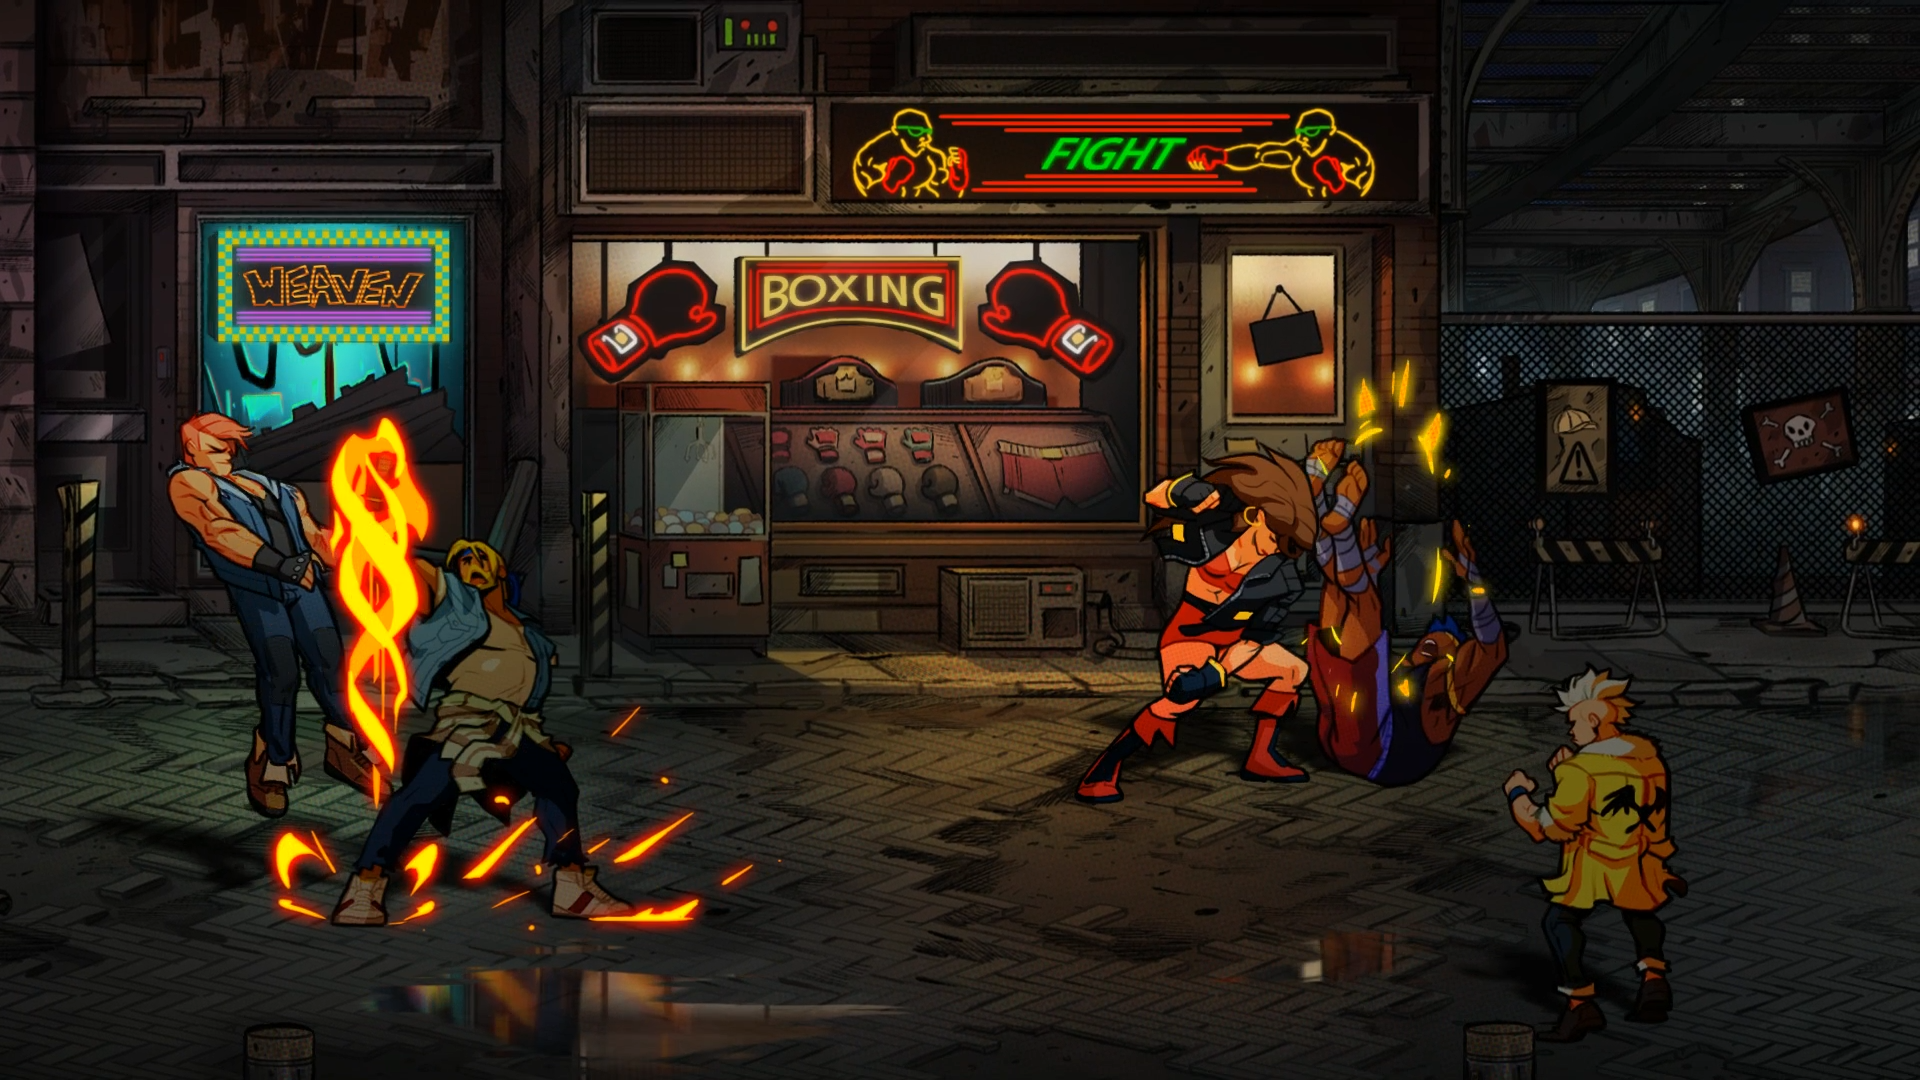 Streetsofrage4-0007 - Streets Of Rage 4 Ign , HD Wallpaper & Backgrounds